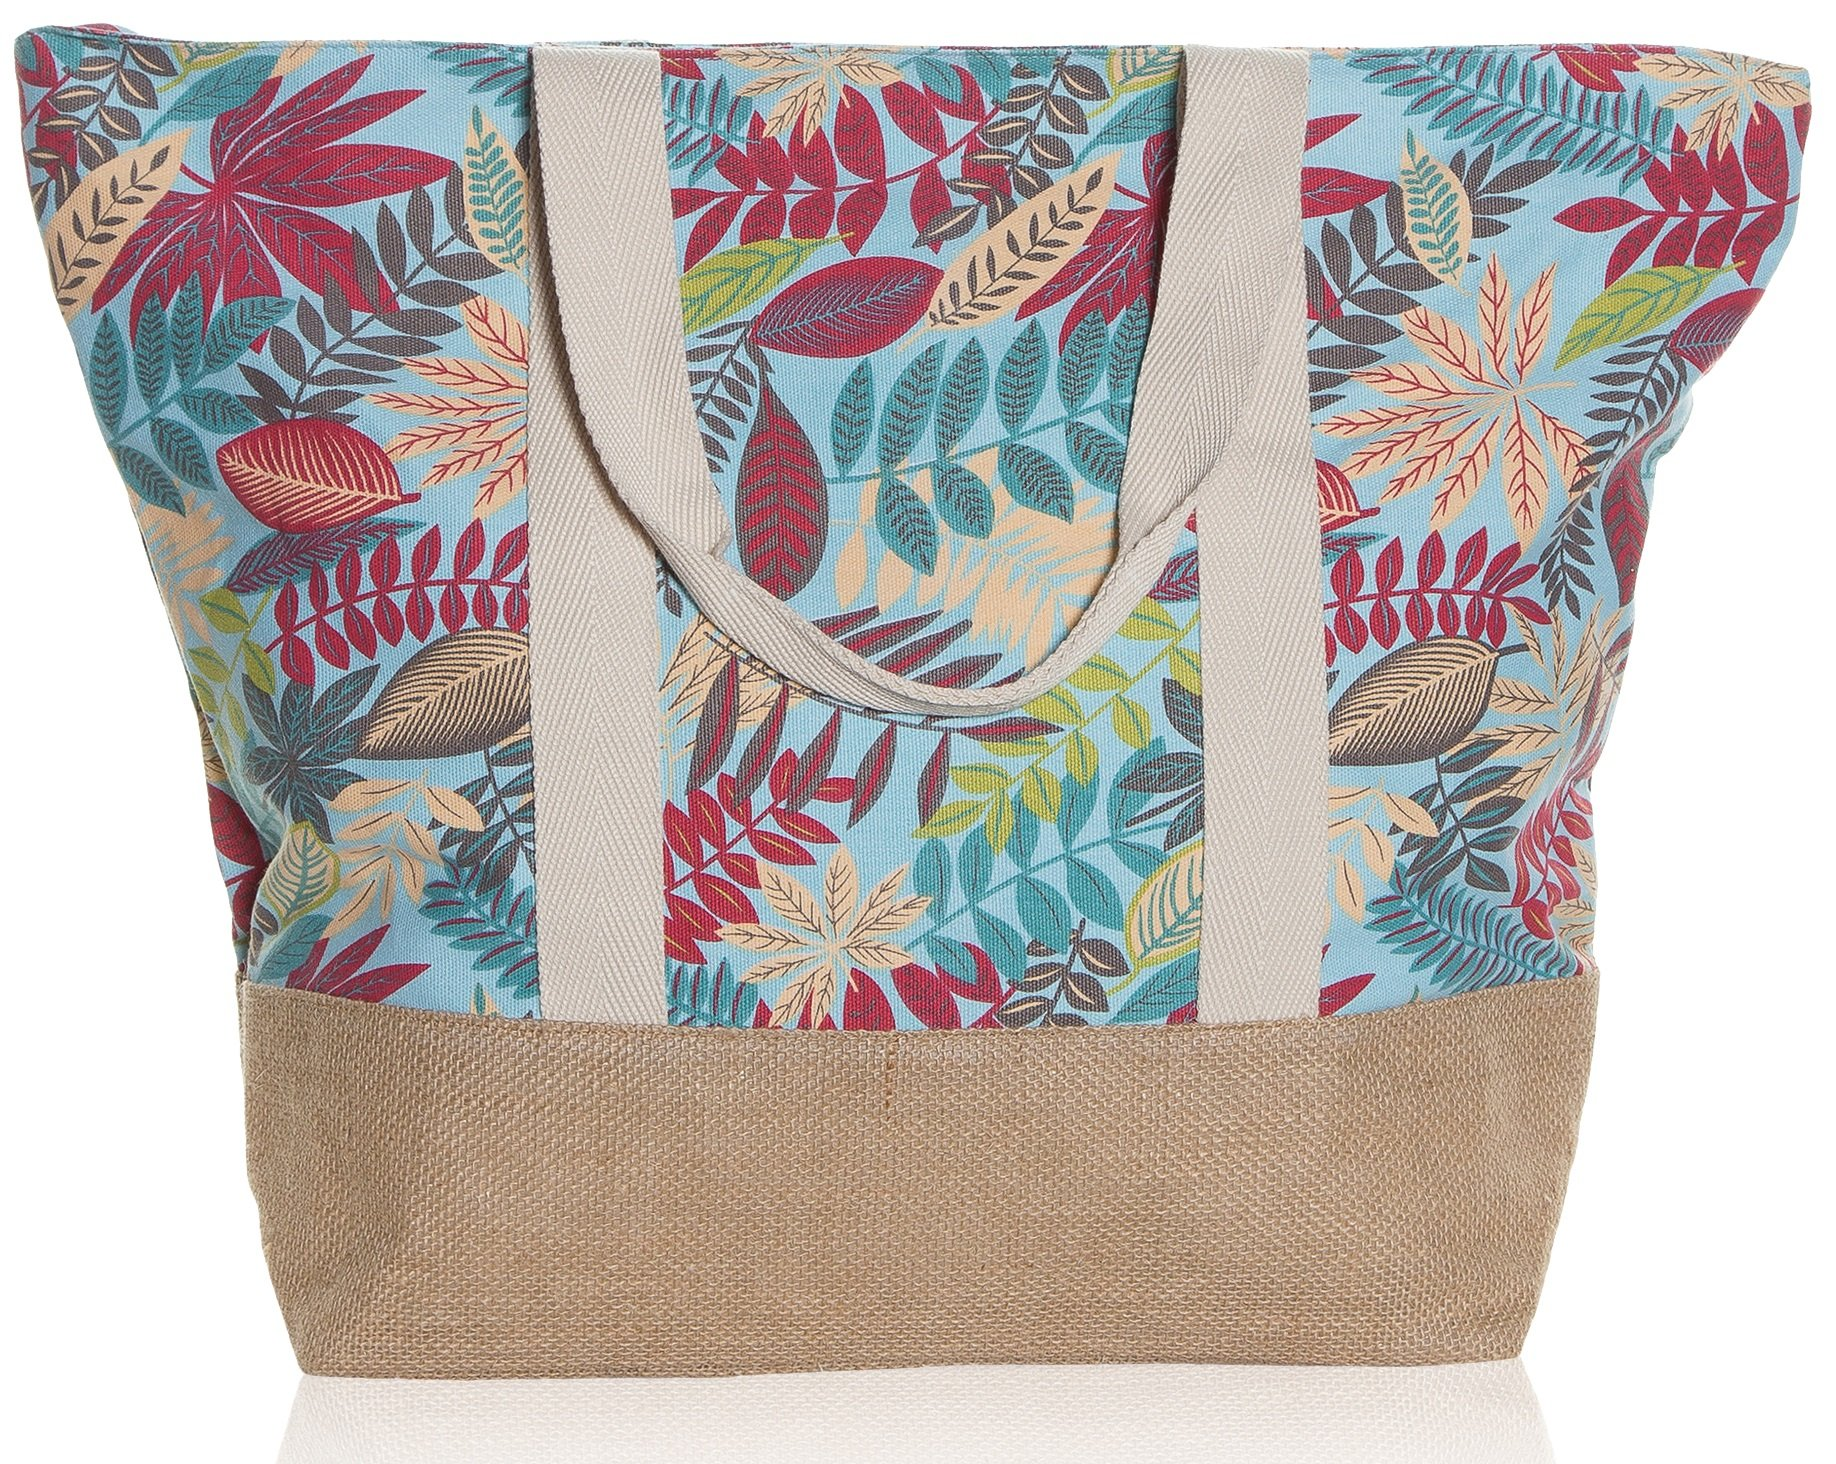 "Beach Bag By Pier 17 - Tote Bag For The Beach, Roomy 20''x18''x6"", Zipper Closure (Tropic Leaves Multi)"